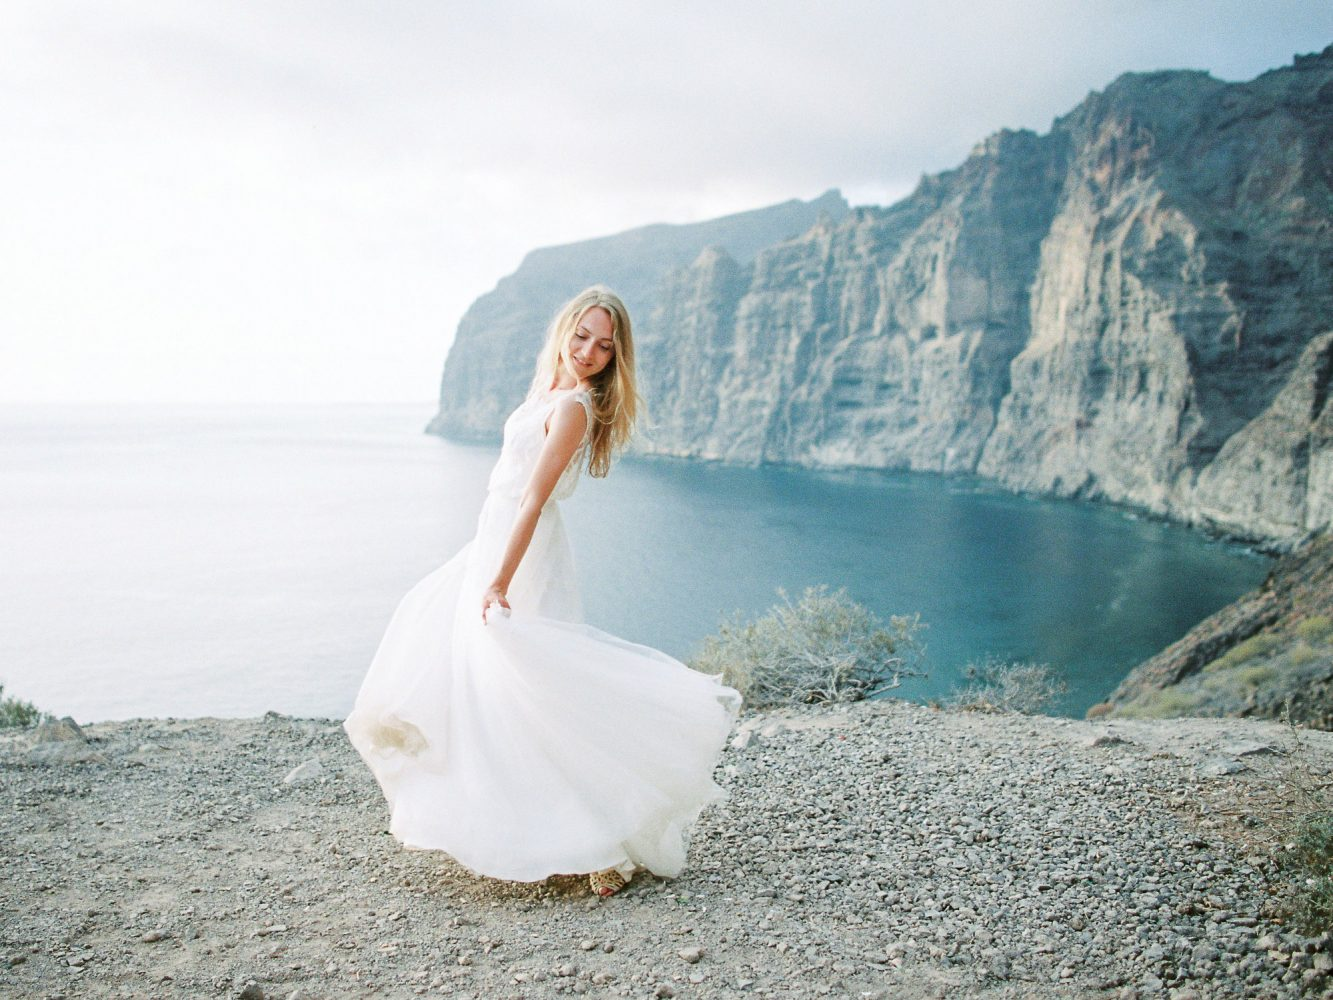 wedding-photographer-LillyVerhaegen-Tenerife-Italy-19